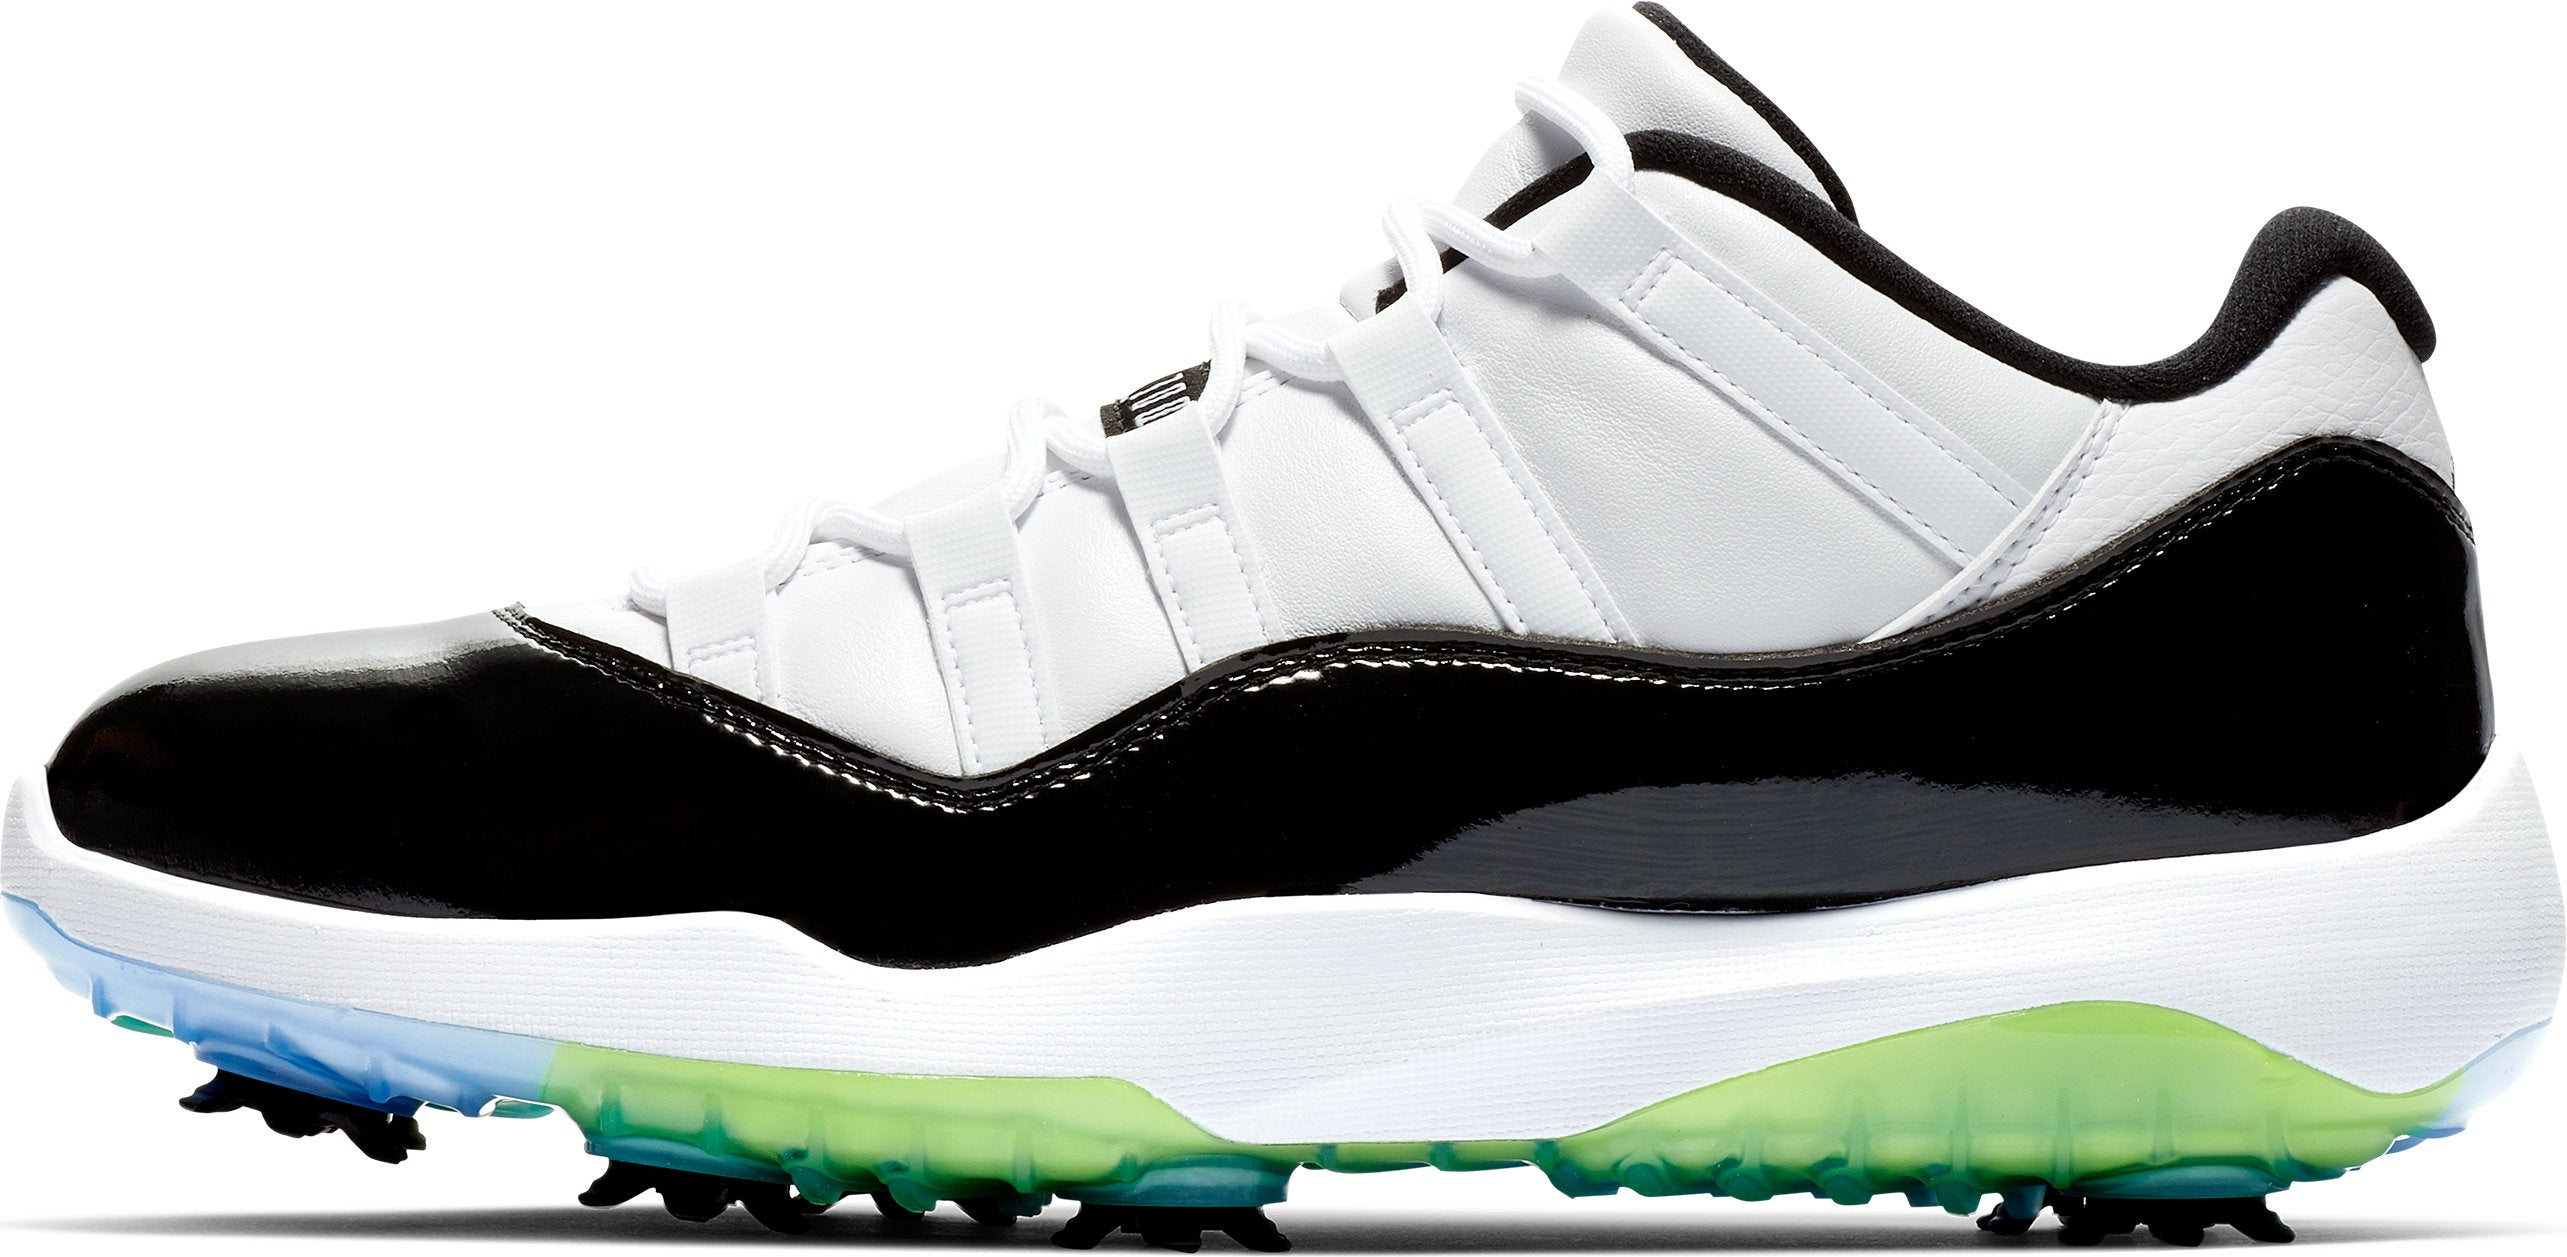 62f82db217a FIRST LOOK: Check out leaked photos of the Air Jordan 'Concord' golf shoes